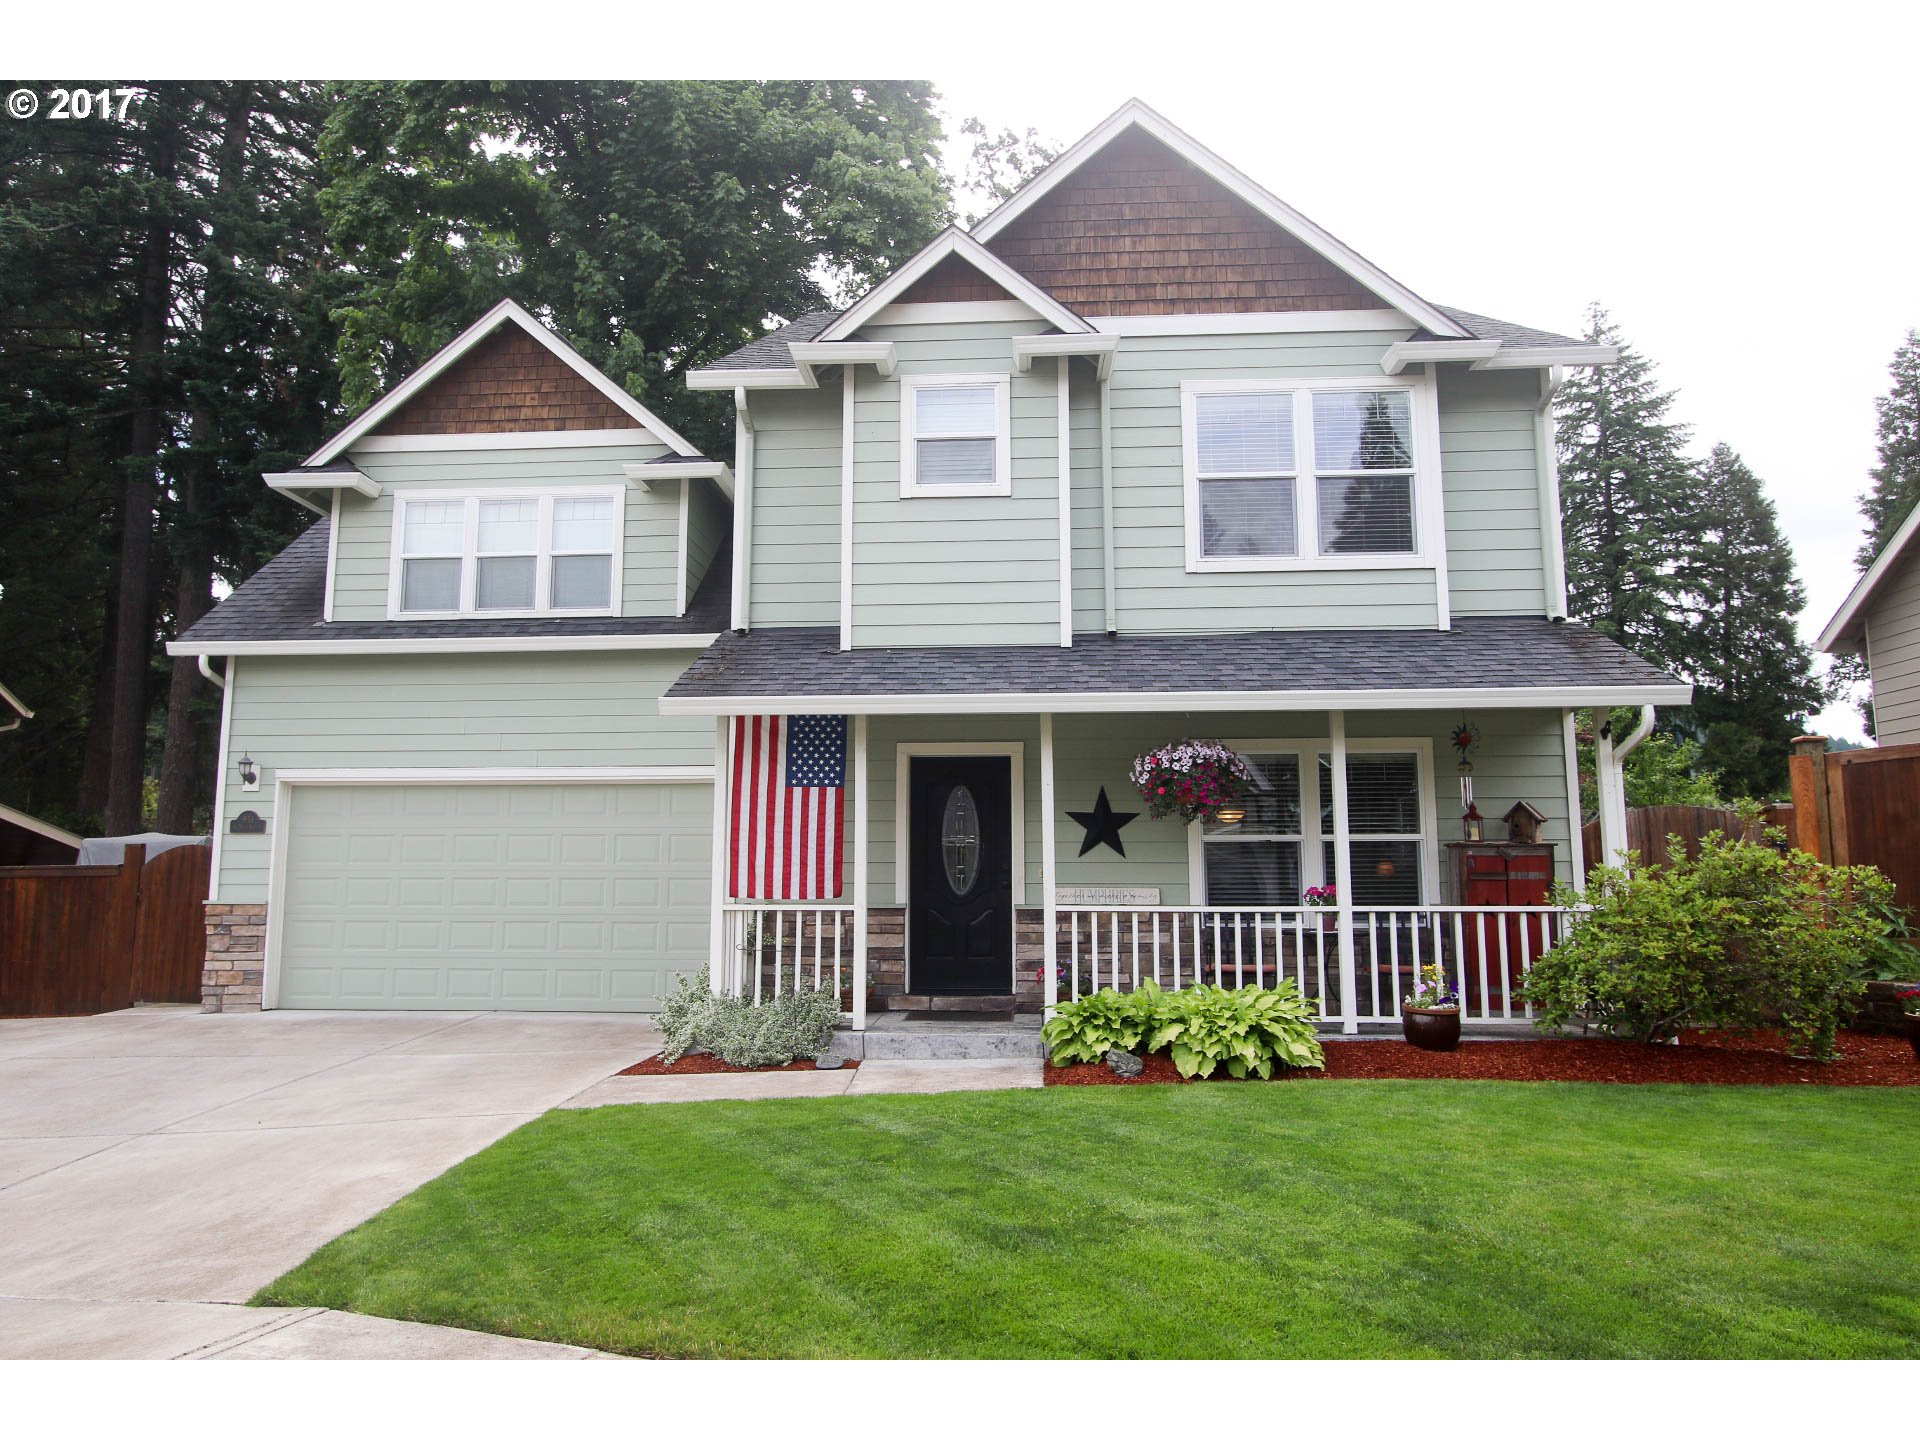 951 S 56TH ST, Springfield, OR 97478